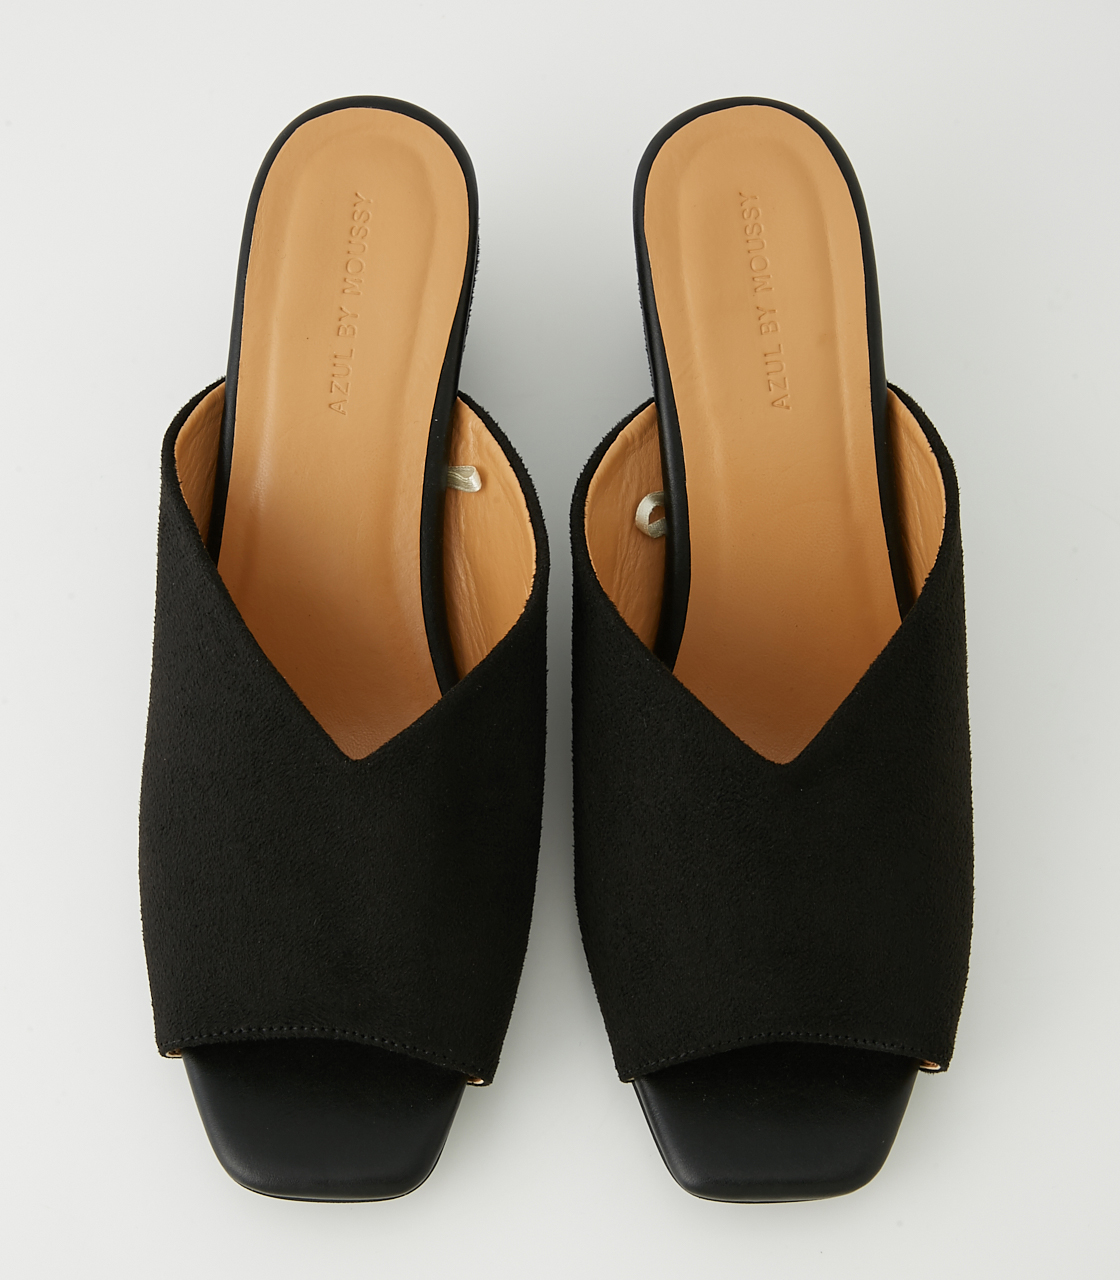 V CUTTING SANDALS/Vカッティングサンダル 詳細画像 BLK 3